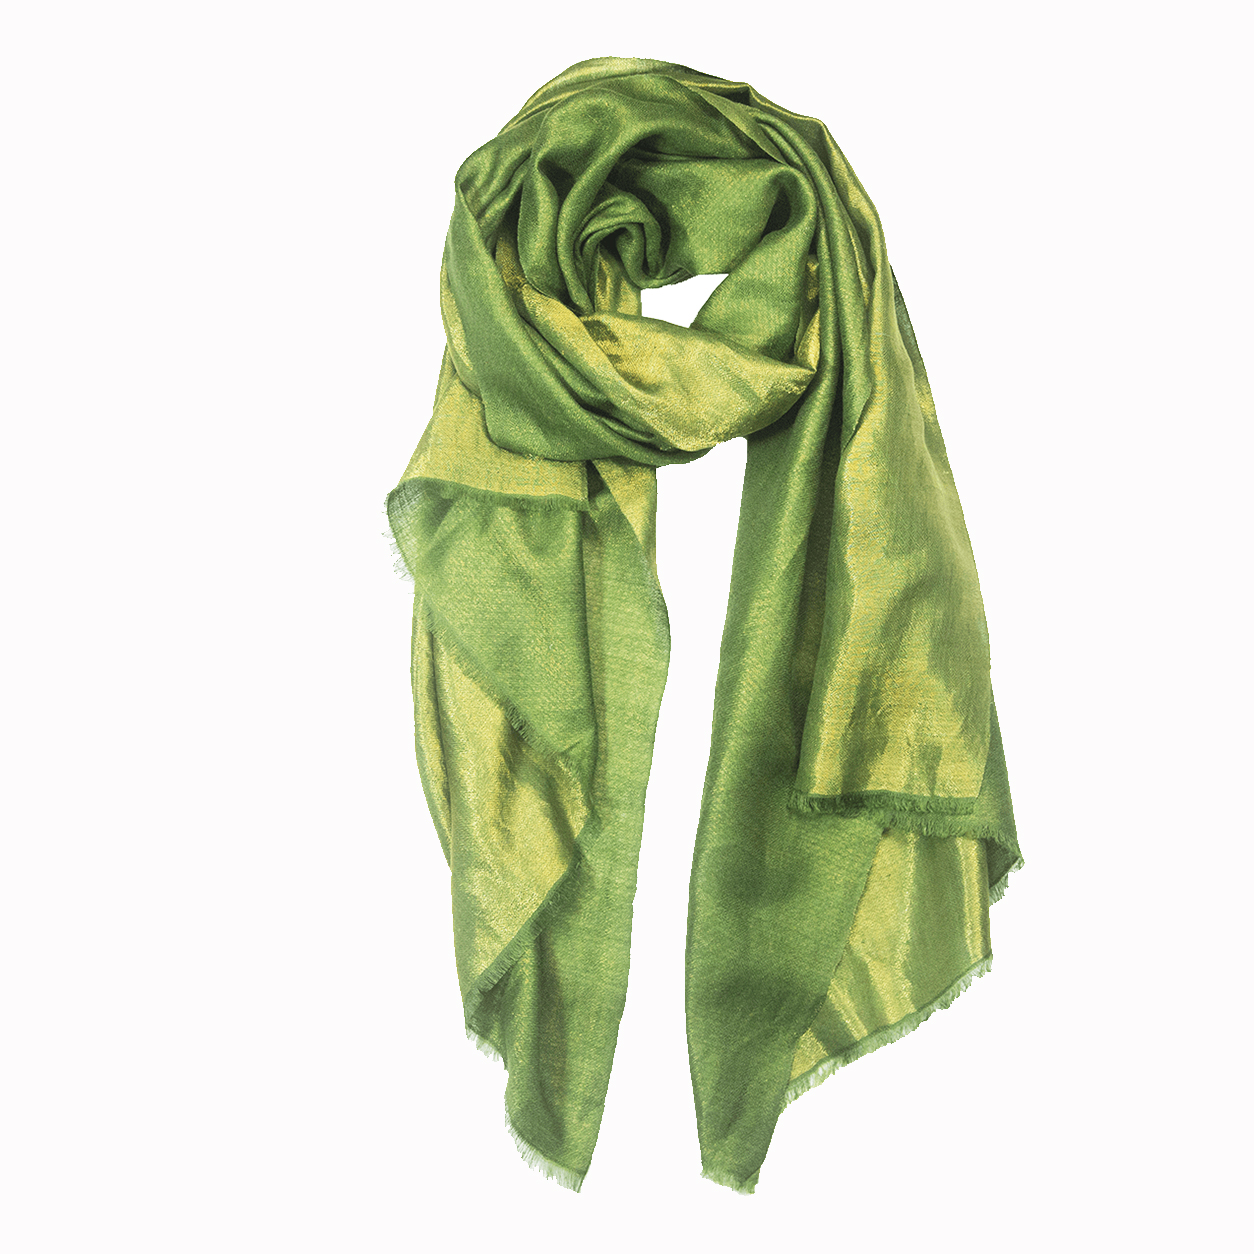 Metallic Reversible Pashmina Stole - Grass Green